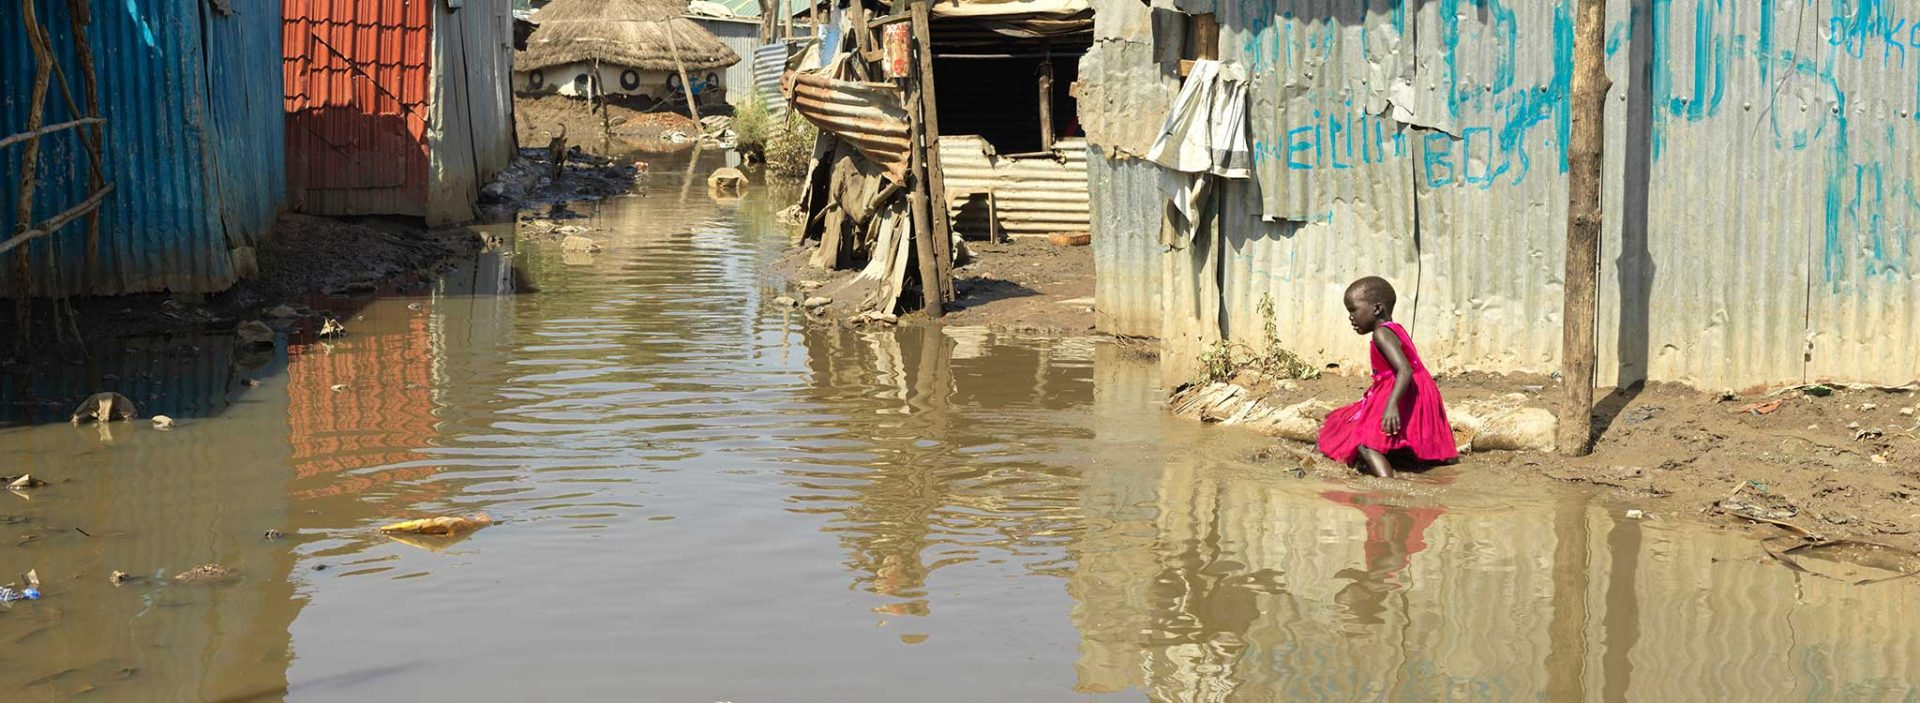 Flooding in South Sudan.